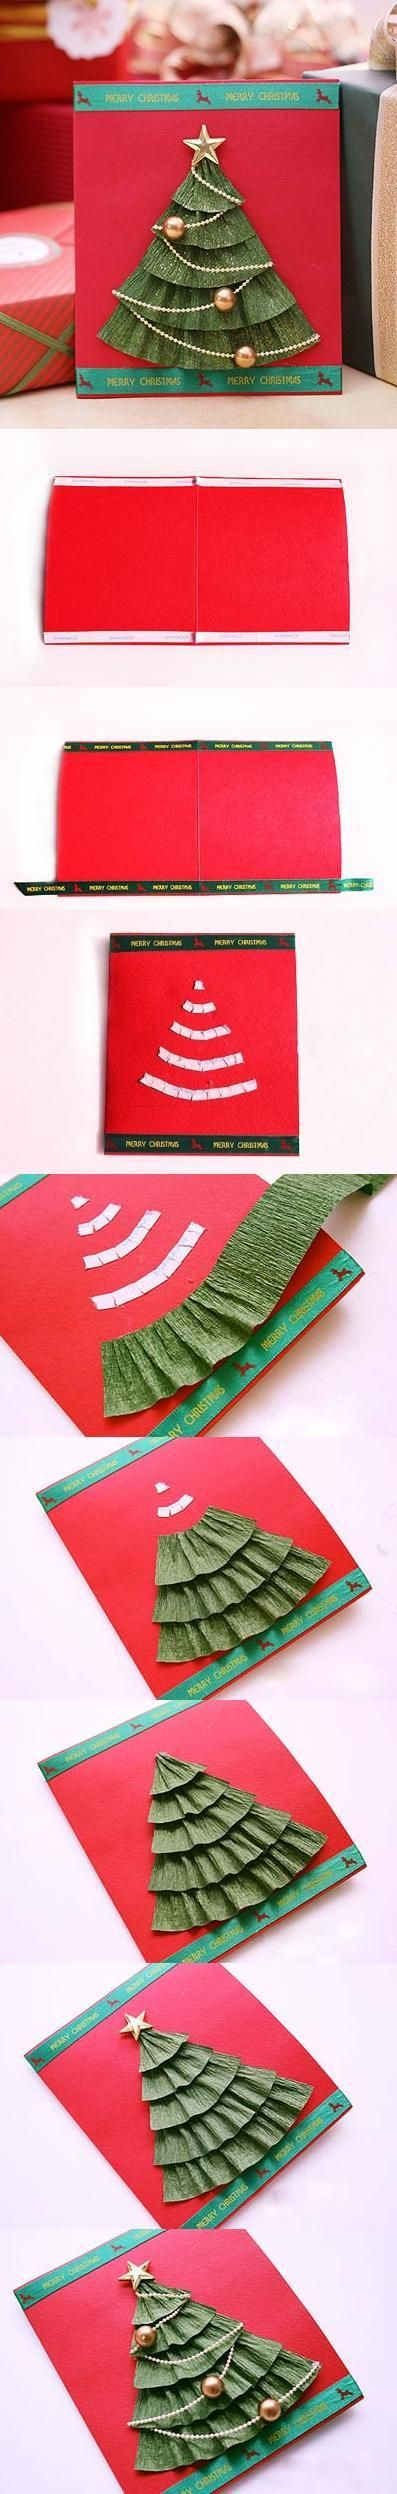 Crape paper Christmas tree... Would be cute on the bulletin board if the kiddos made these next CHRISTmas!